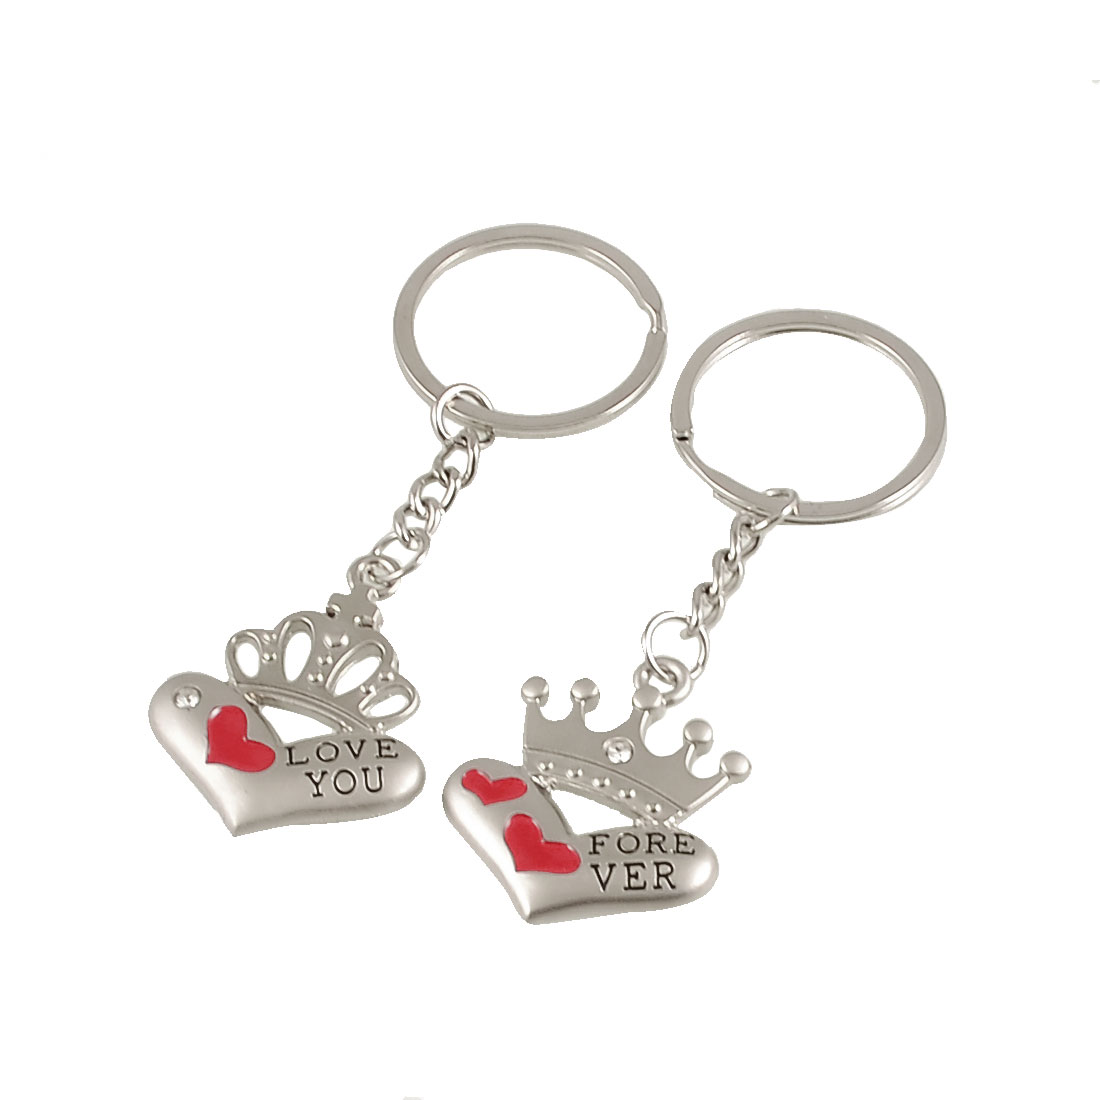 Silver Tone Heart Crown Shape Pendant Flat Split Key Rings 2 Pcs for Lovers